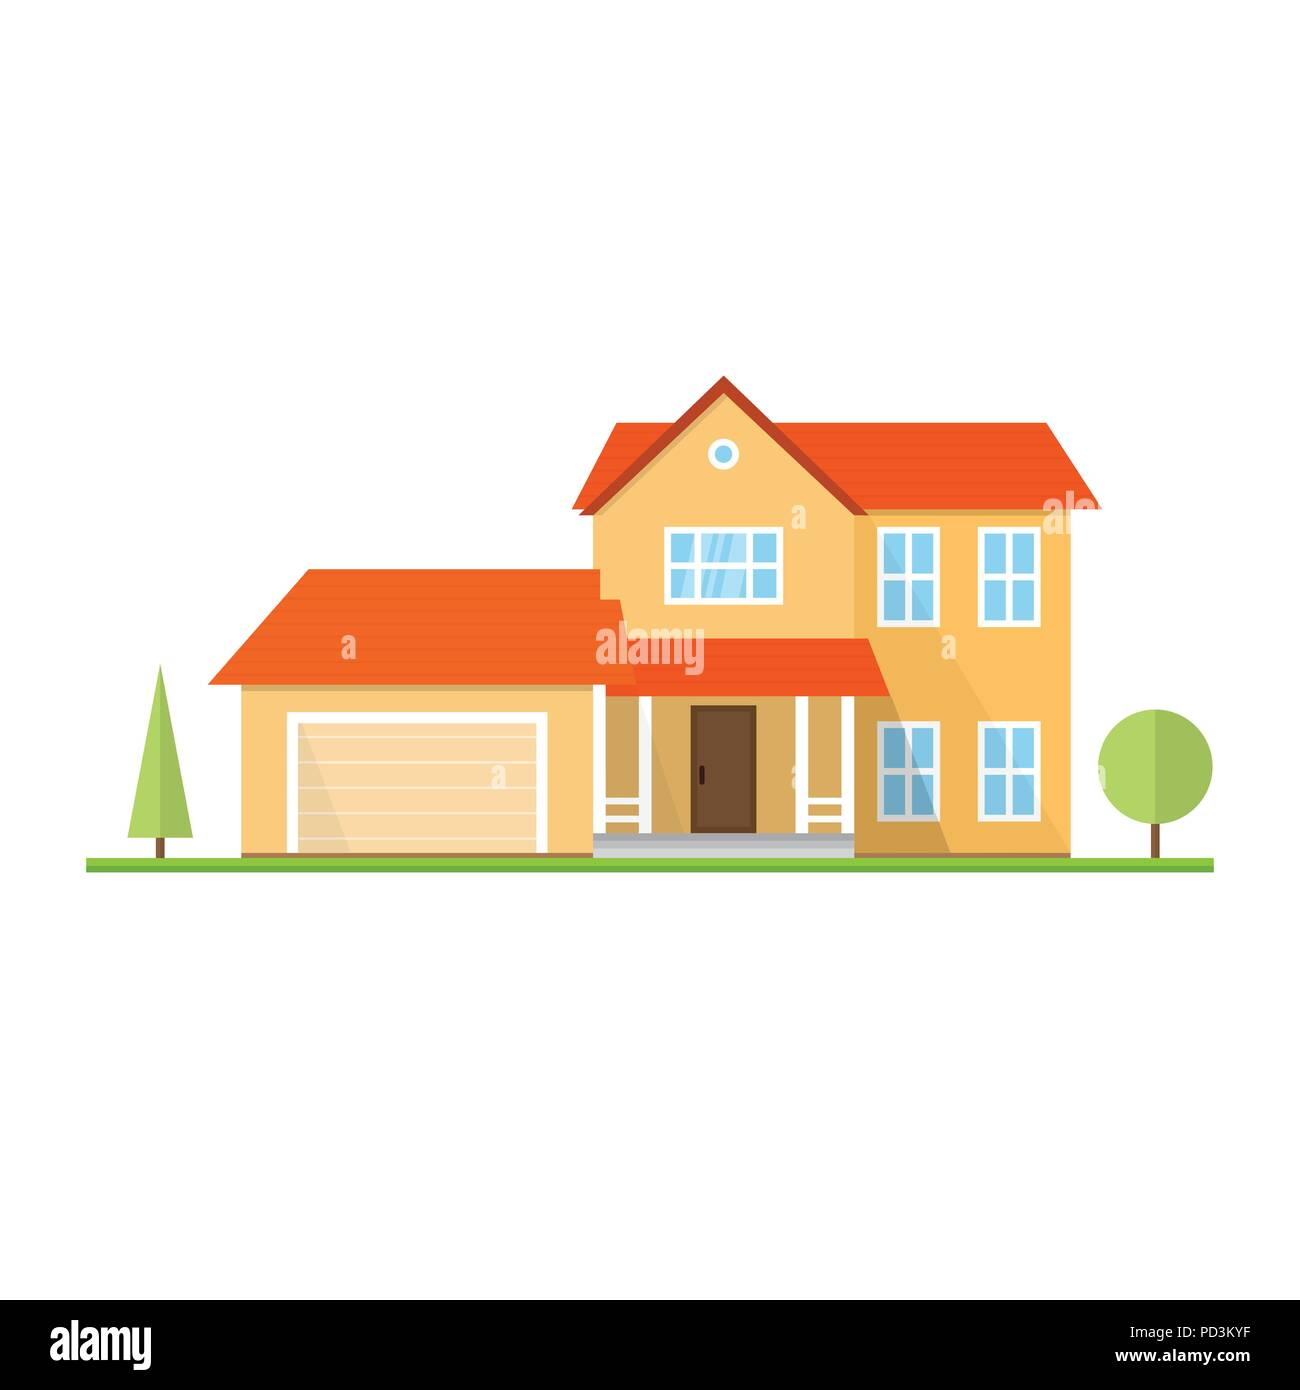 vector flat icon suburban american house for web design and